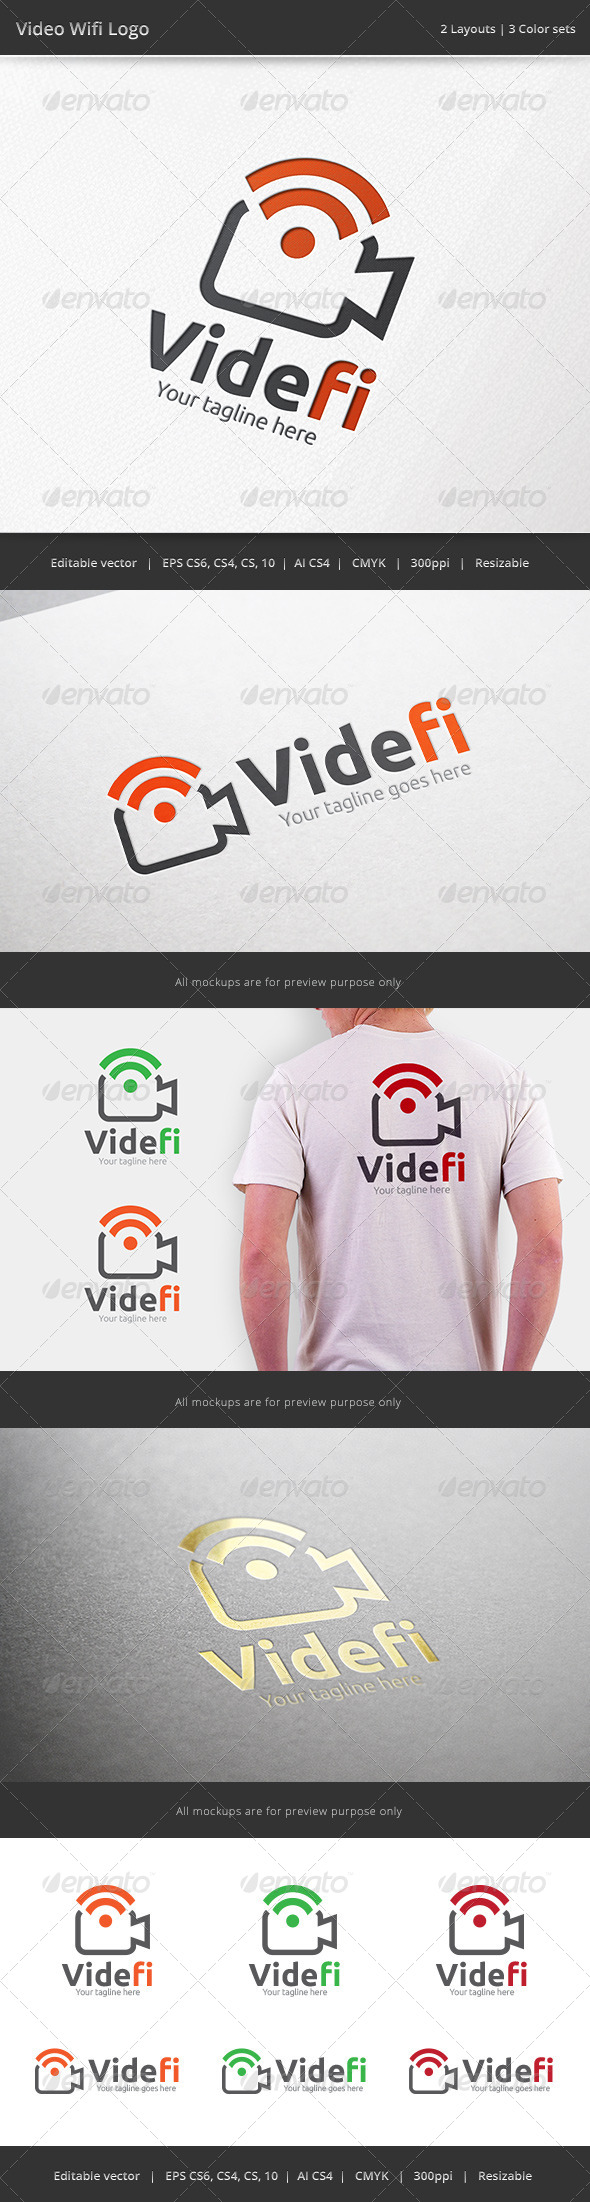 GraphicRiver Video Wifi Camera Logo 7095287